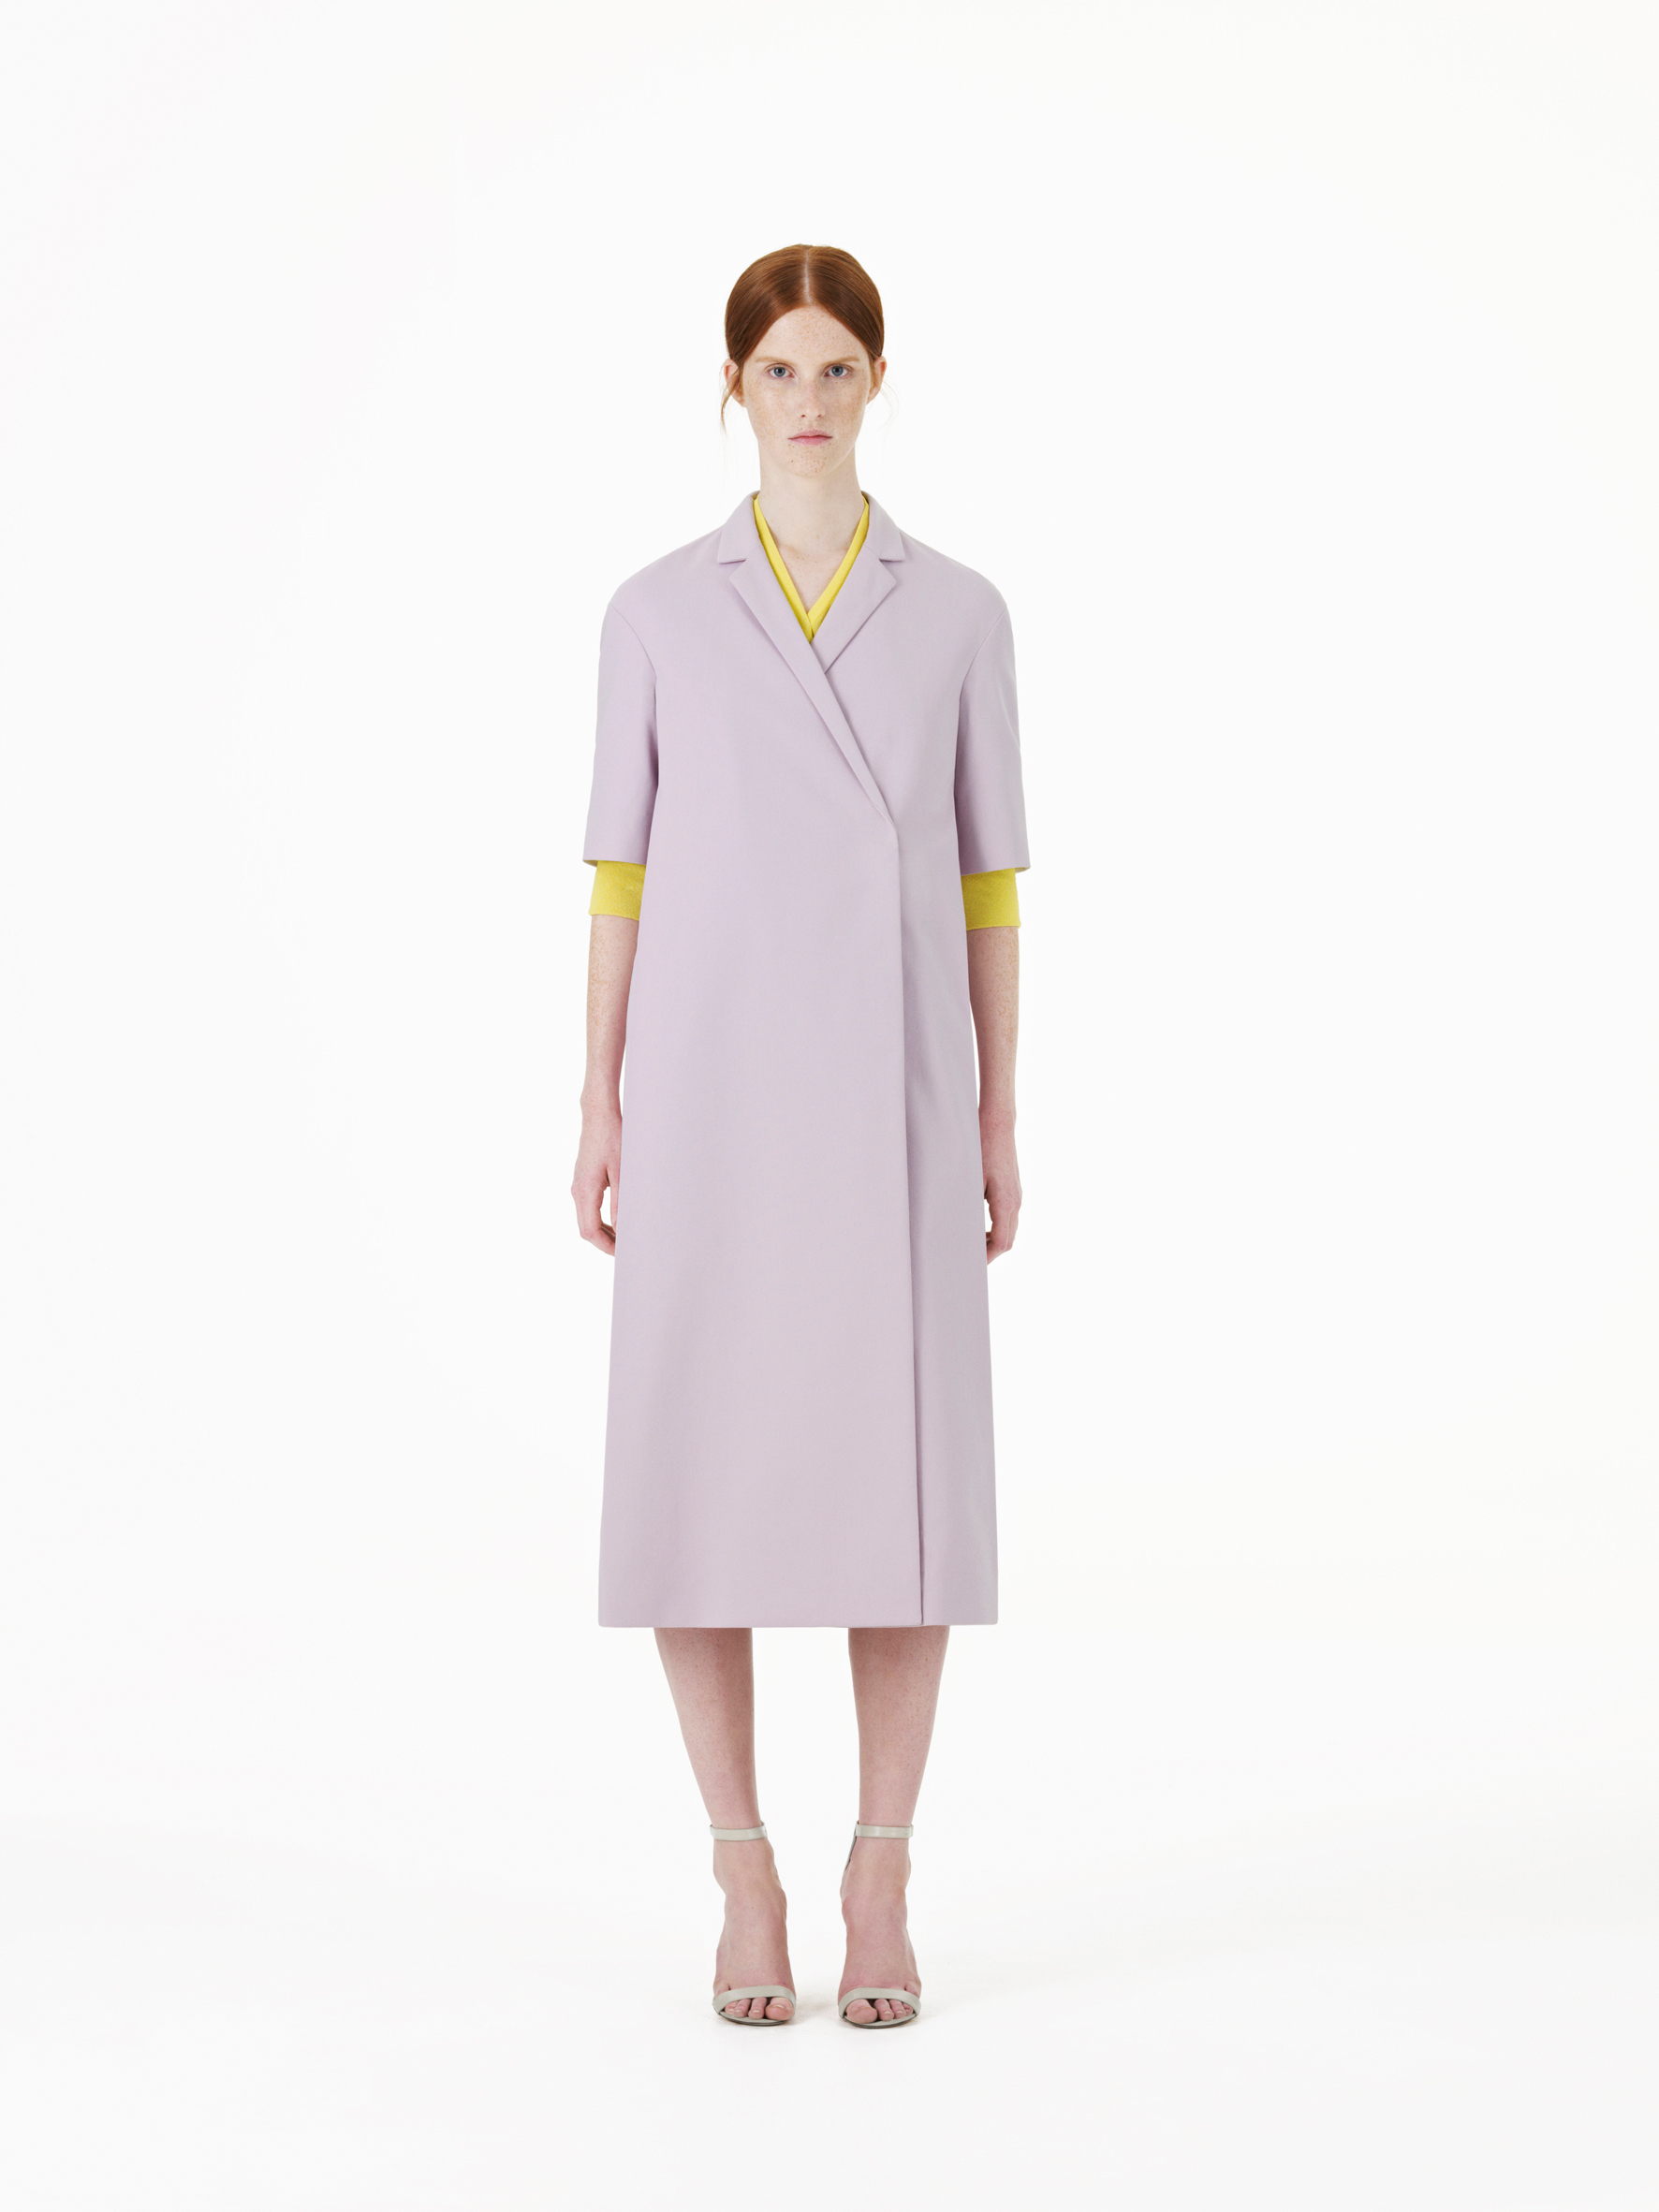 COS_SS14_WOMENS_16_lowres